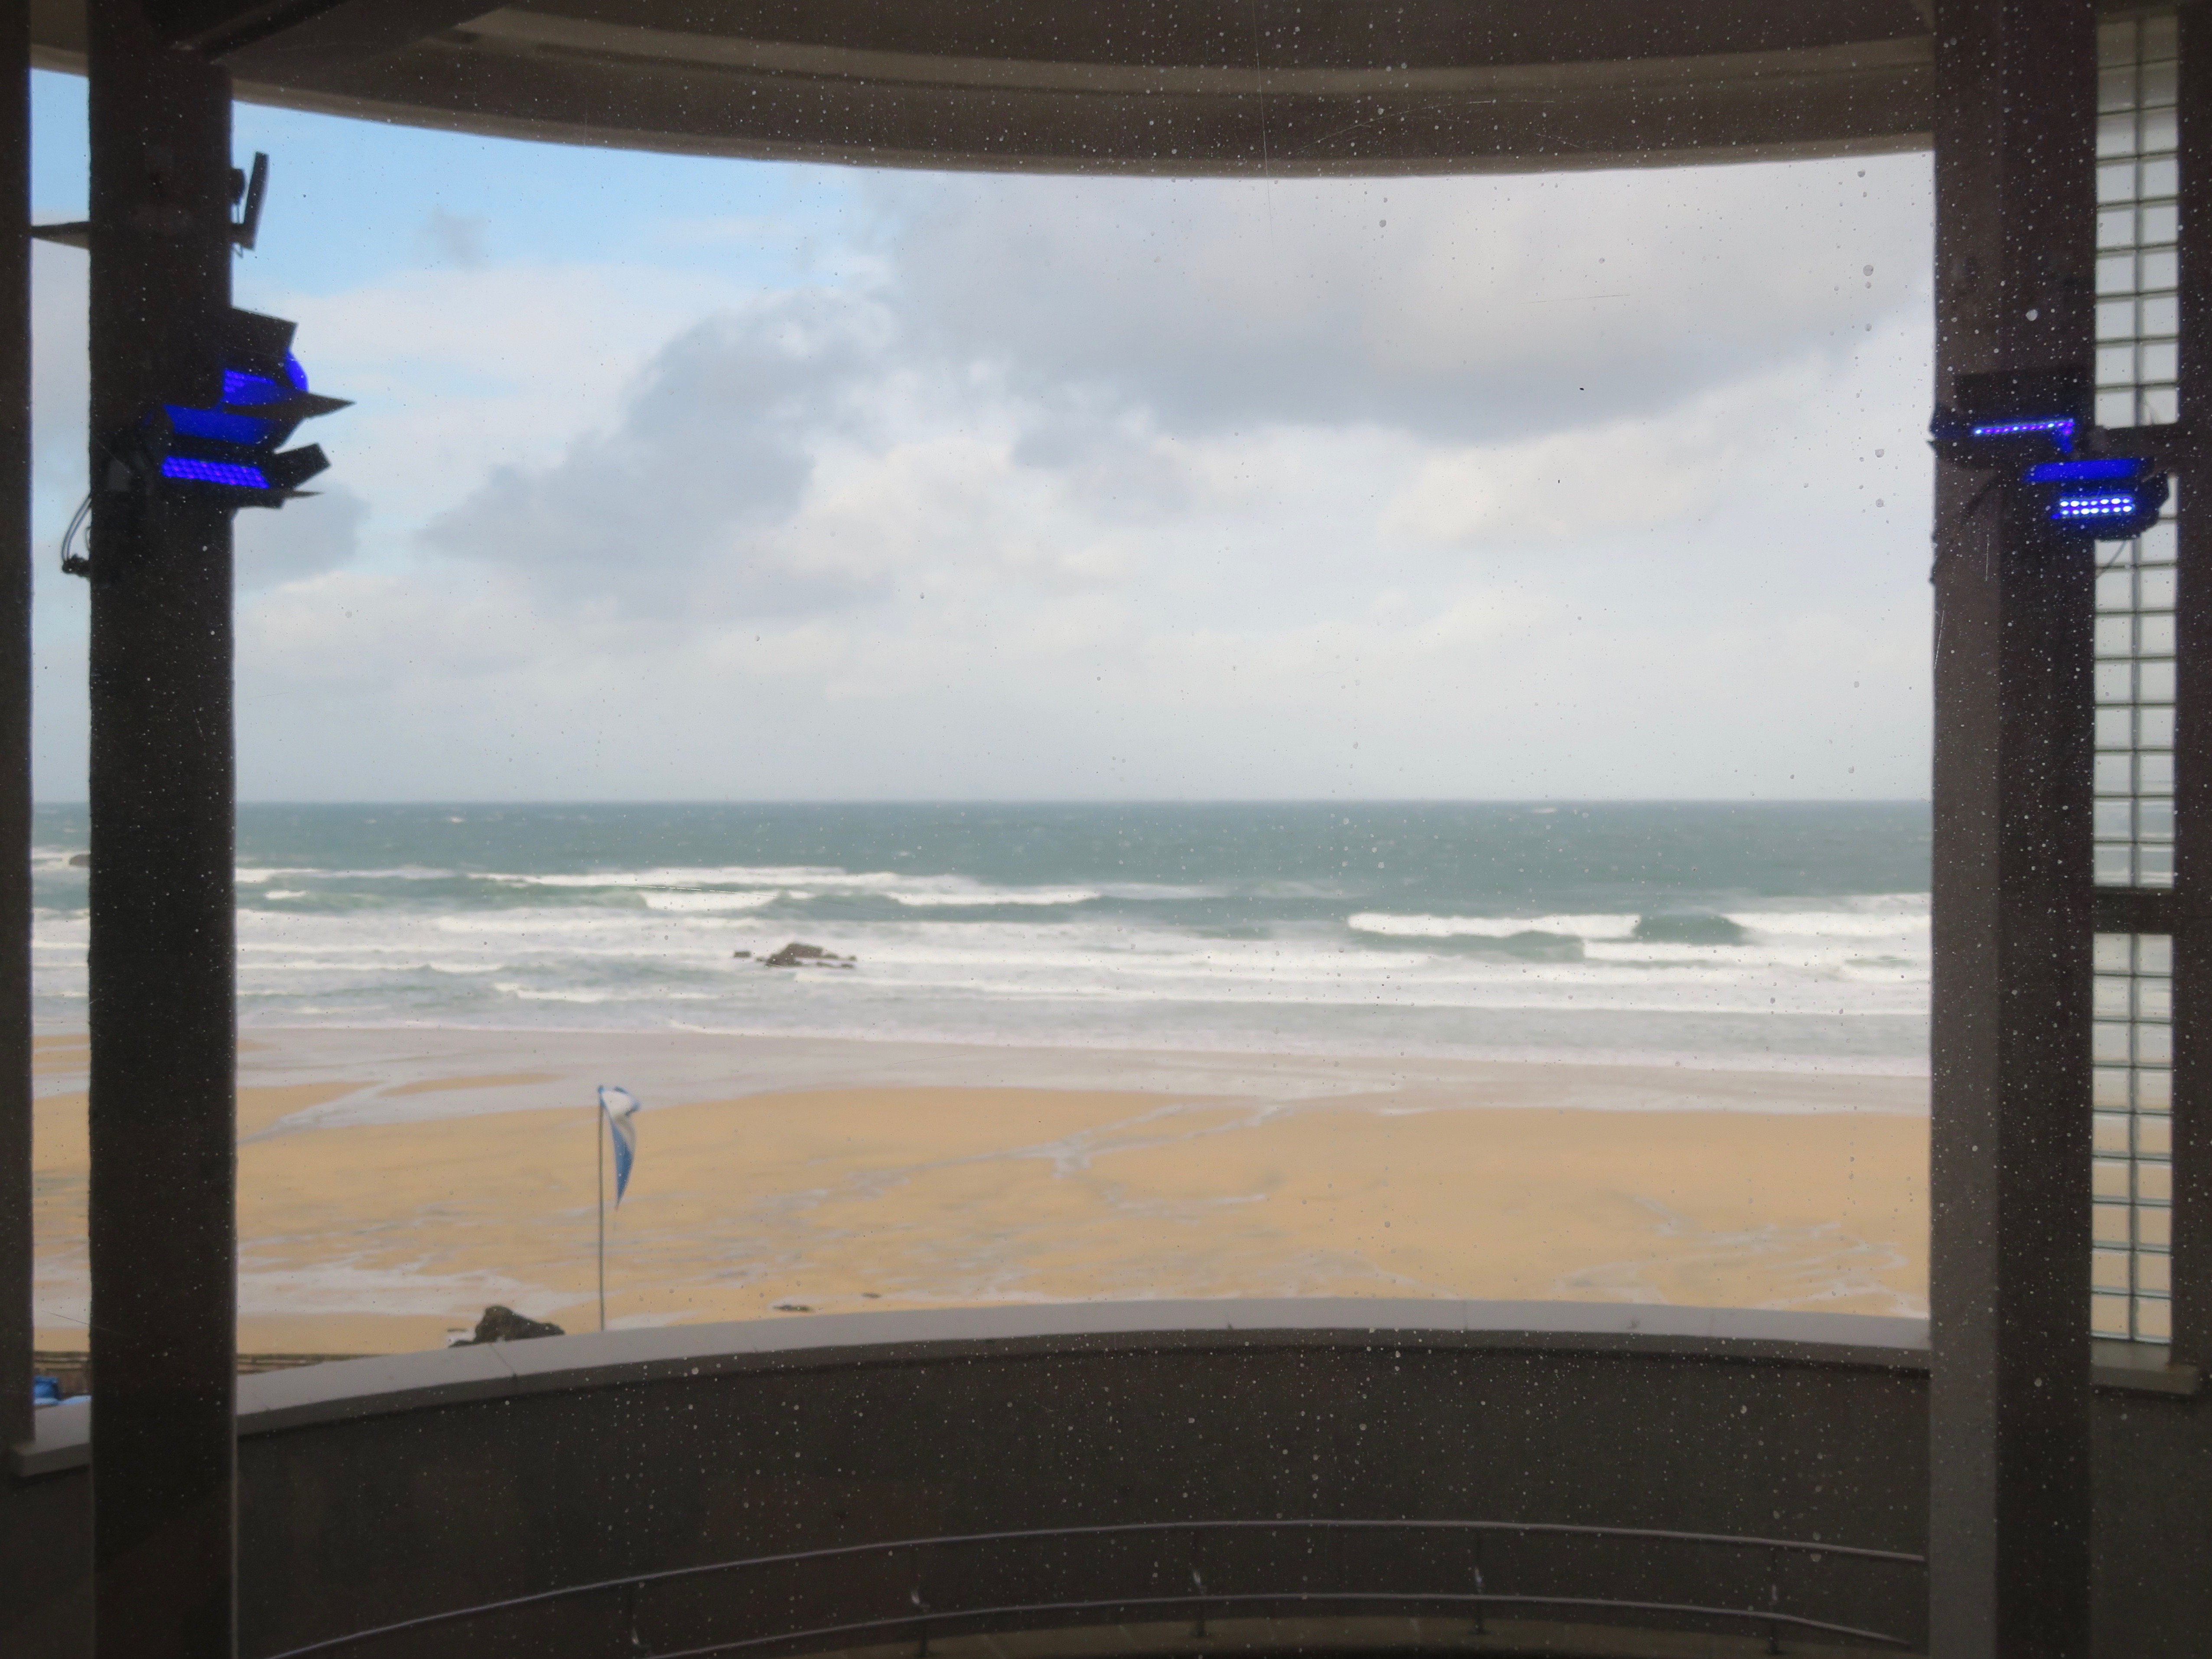 Porthmeor from The Tate